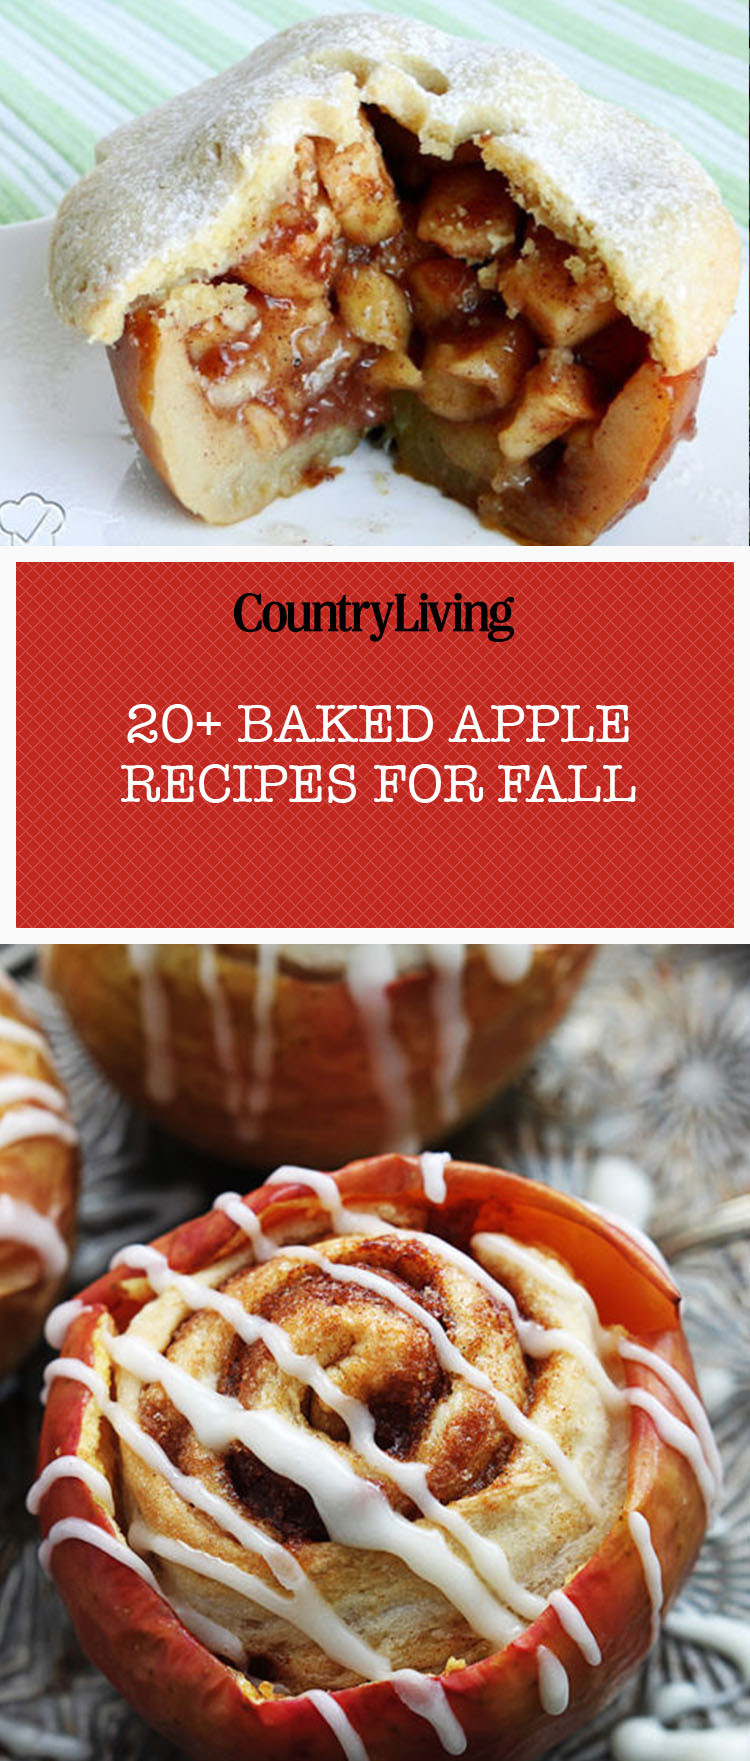 Apple Recipes For Fall  23 Fall Baked Apple Recipes Easy Ideas for Stuffed Apples